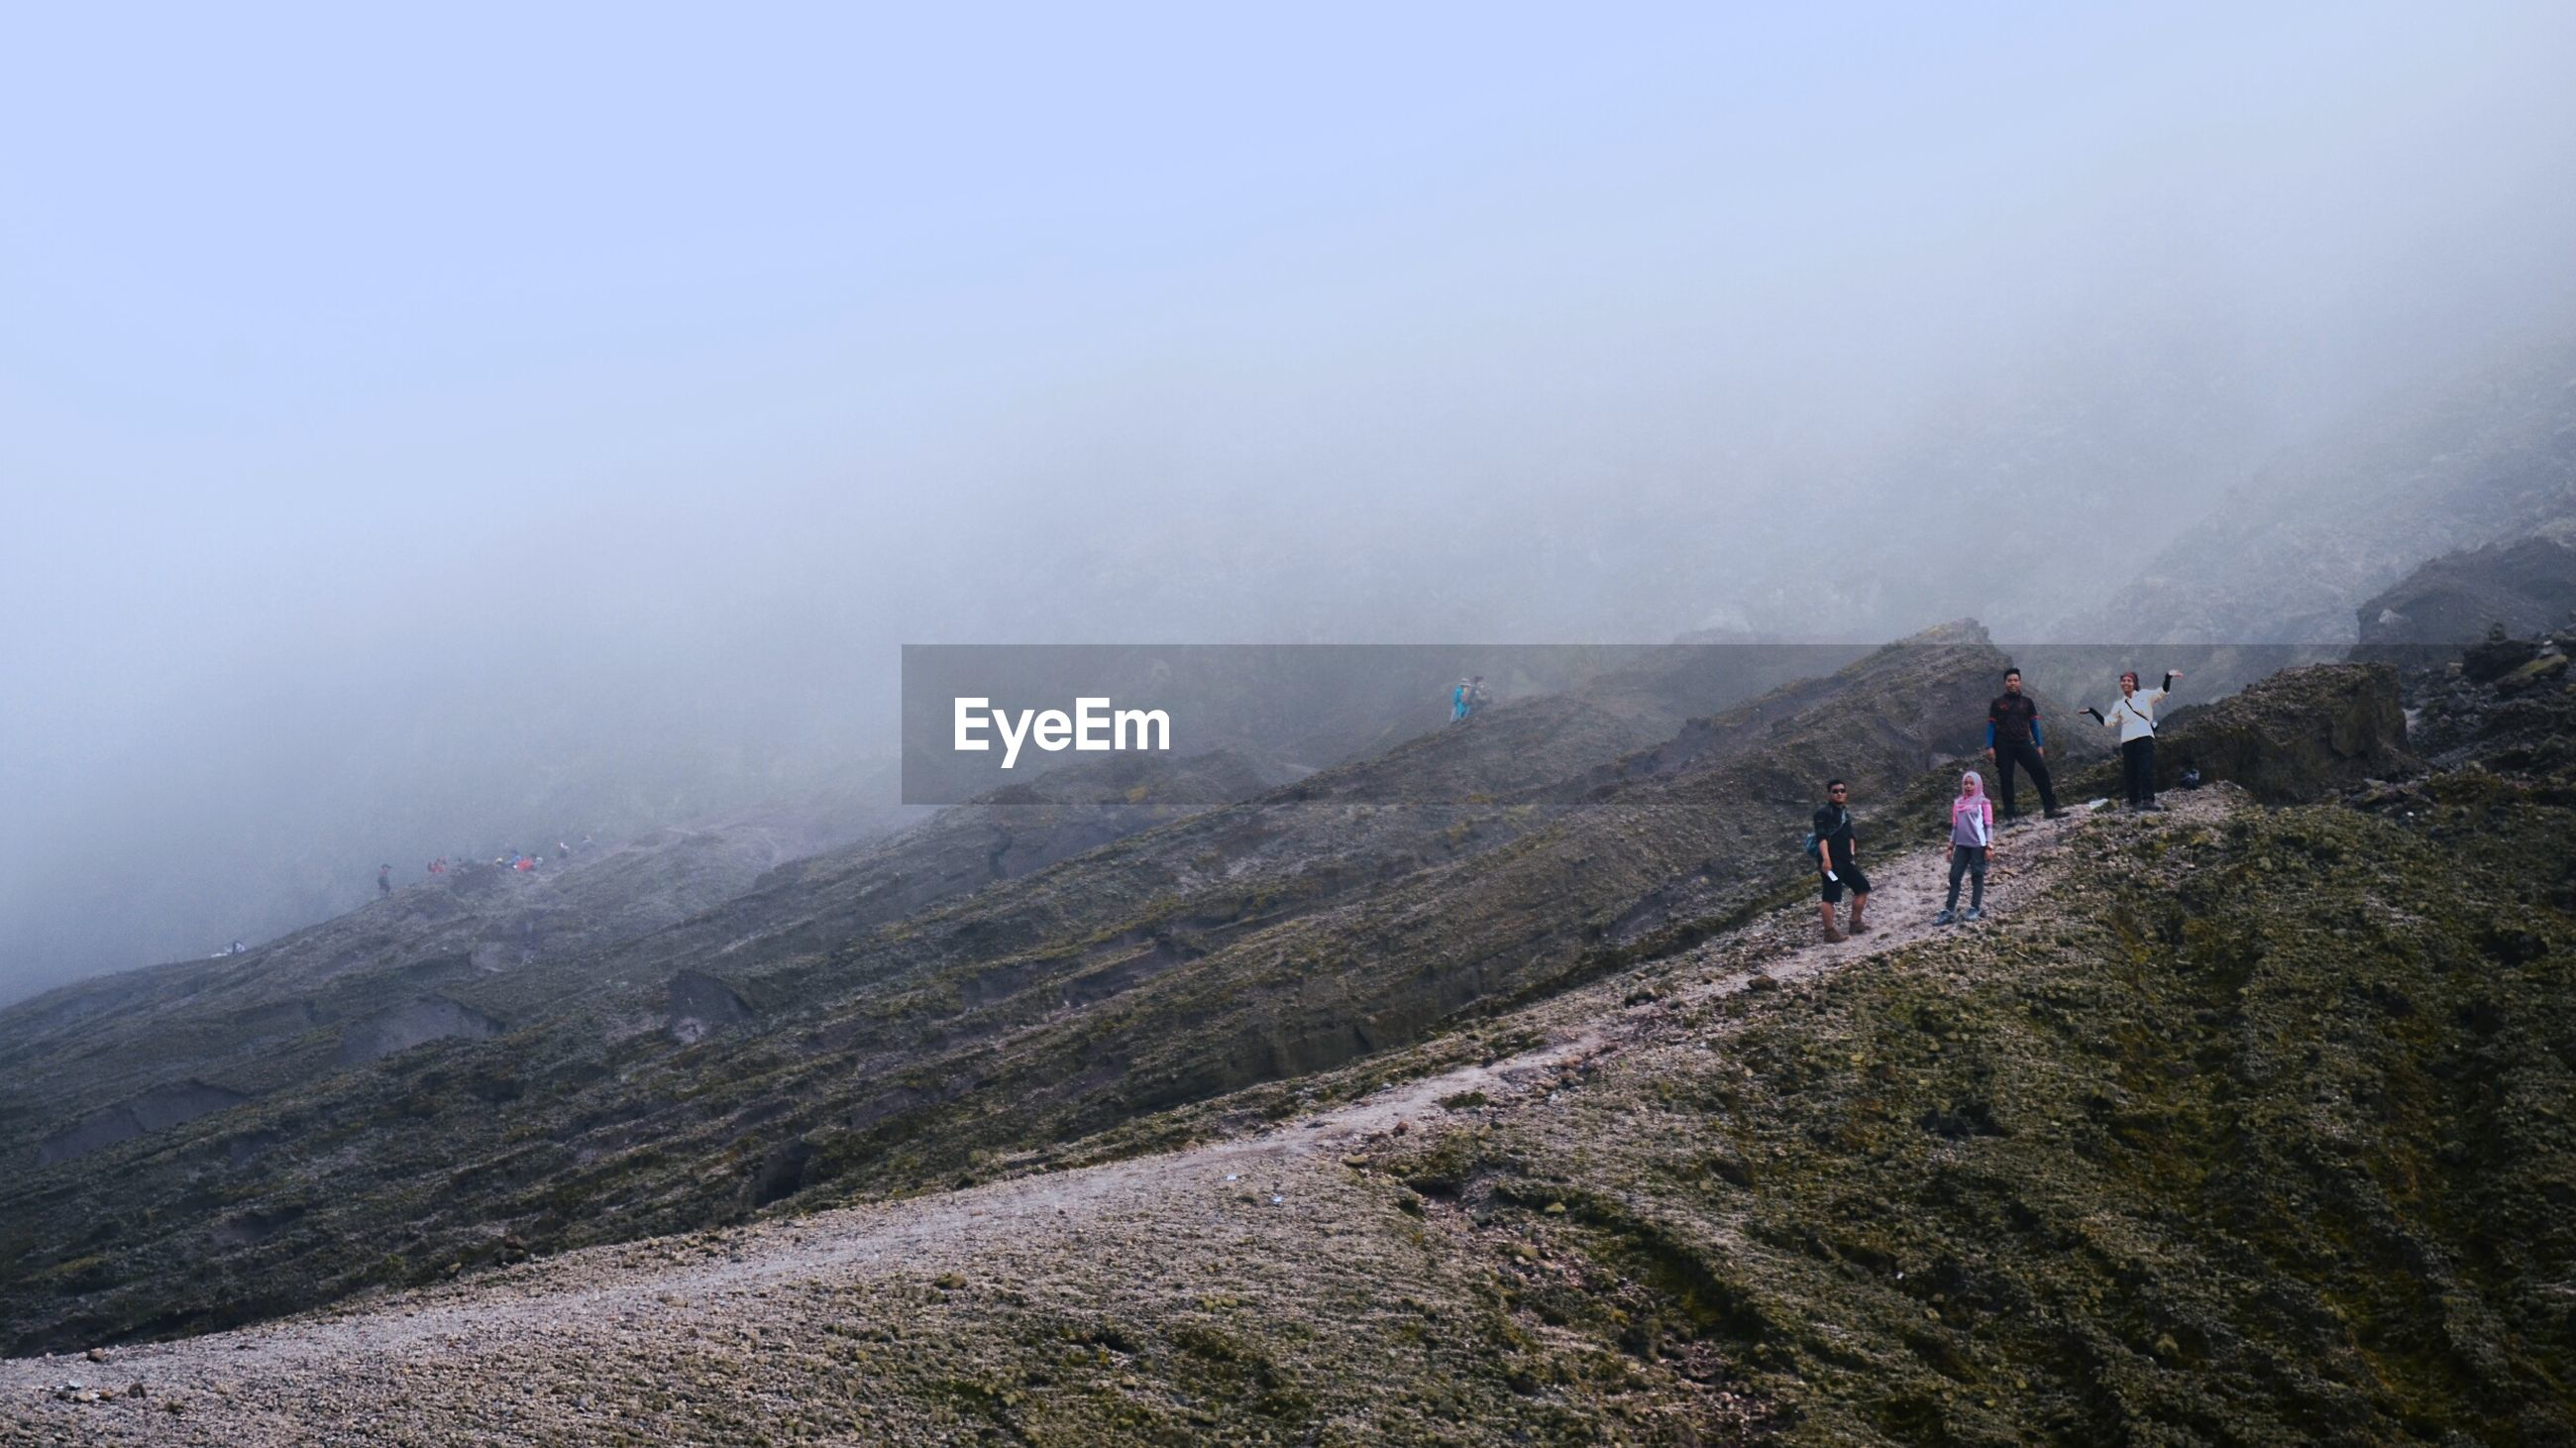 Friends on mountain during foggy weather